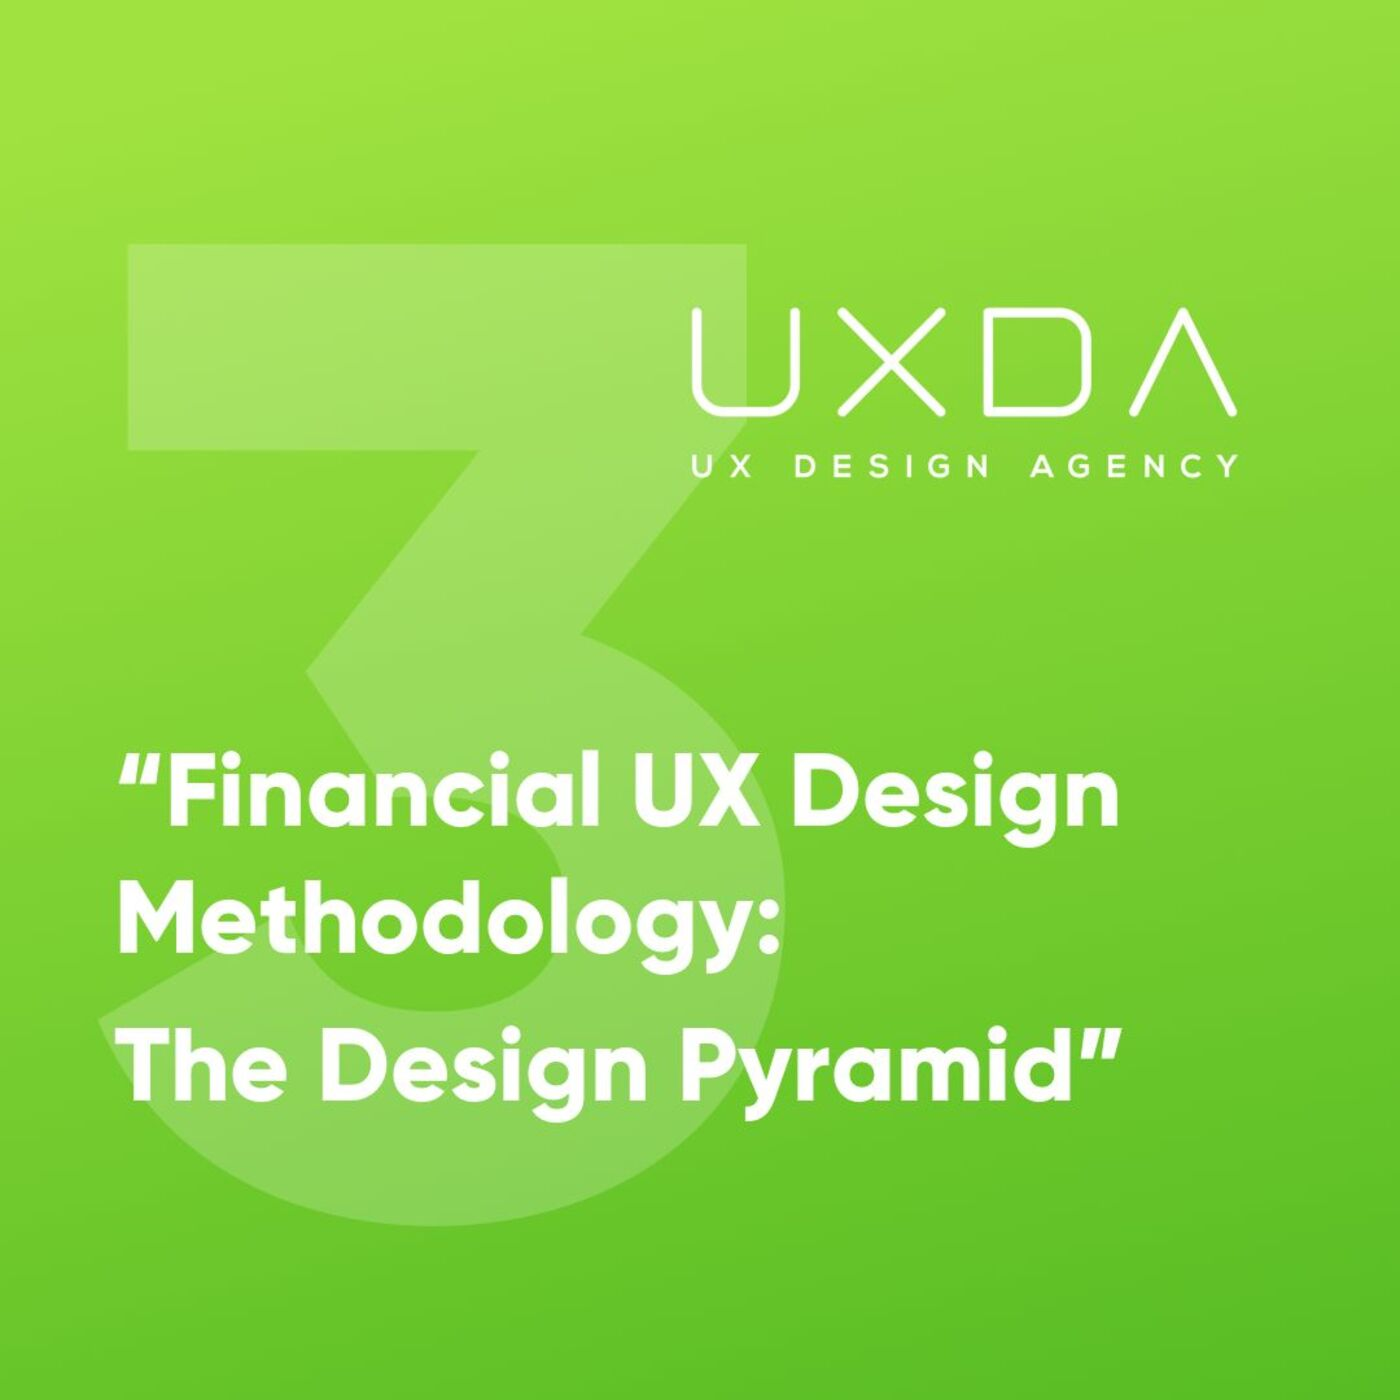 #3 The Design Pyramid of the Financial UX Design Methodology